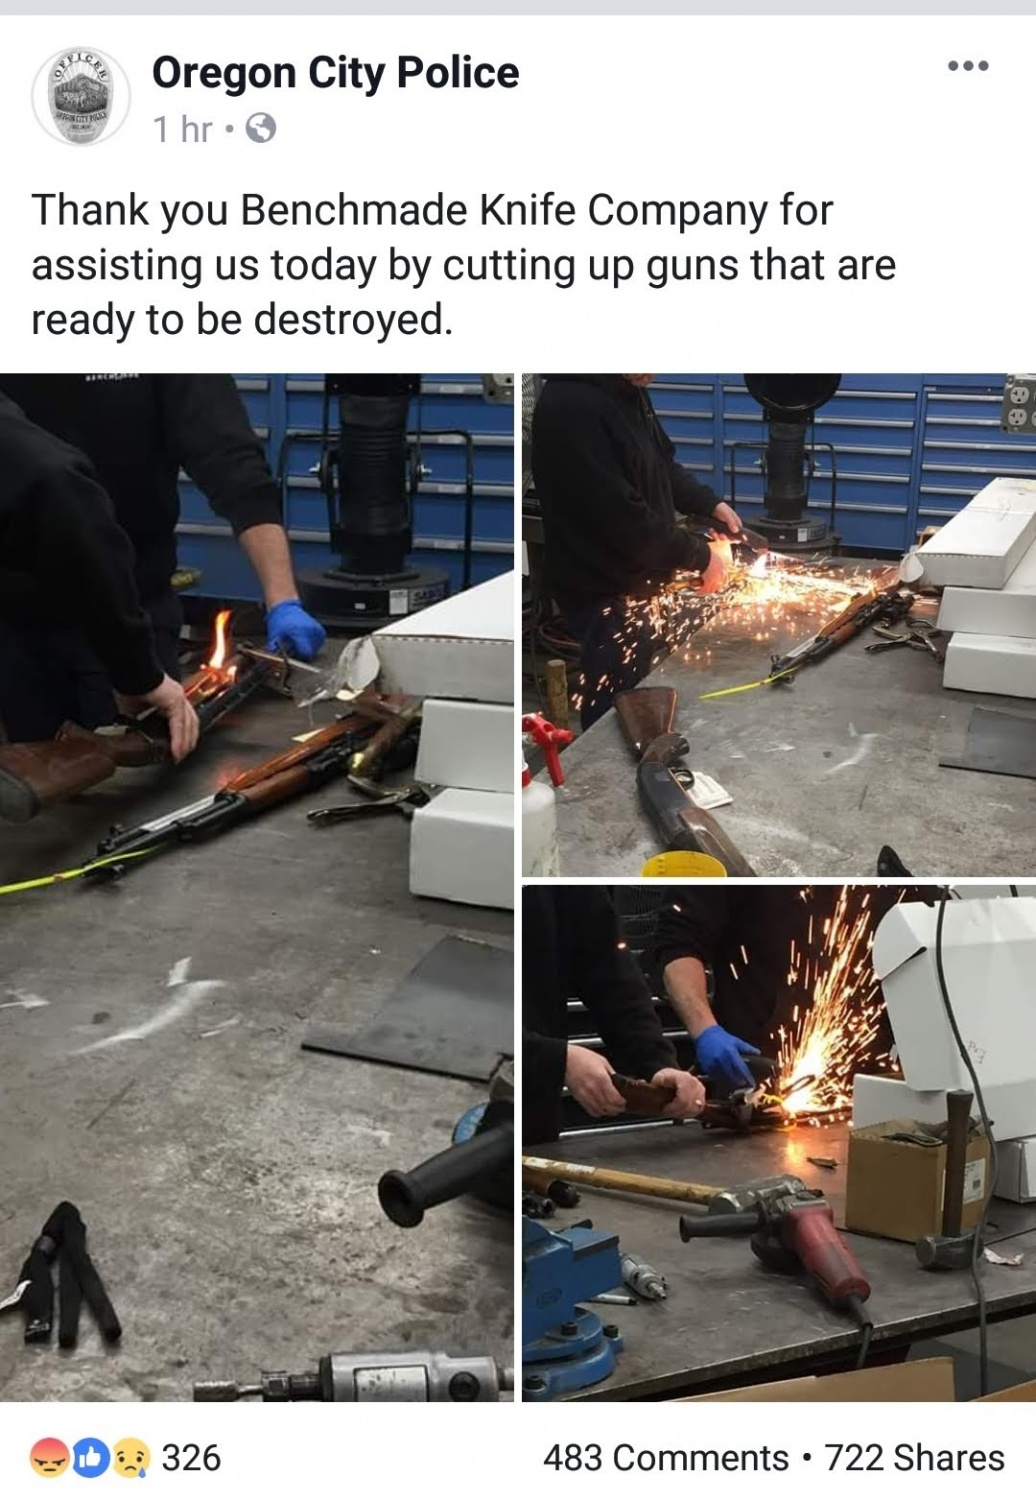 Benchmade Helps PD Destroy Guns: Official Statement